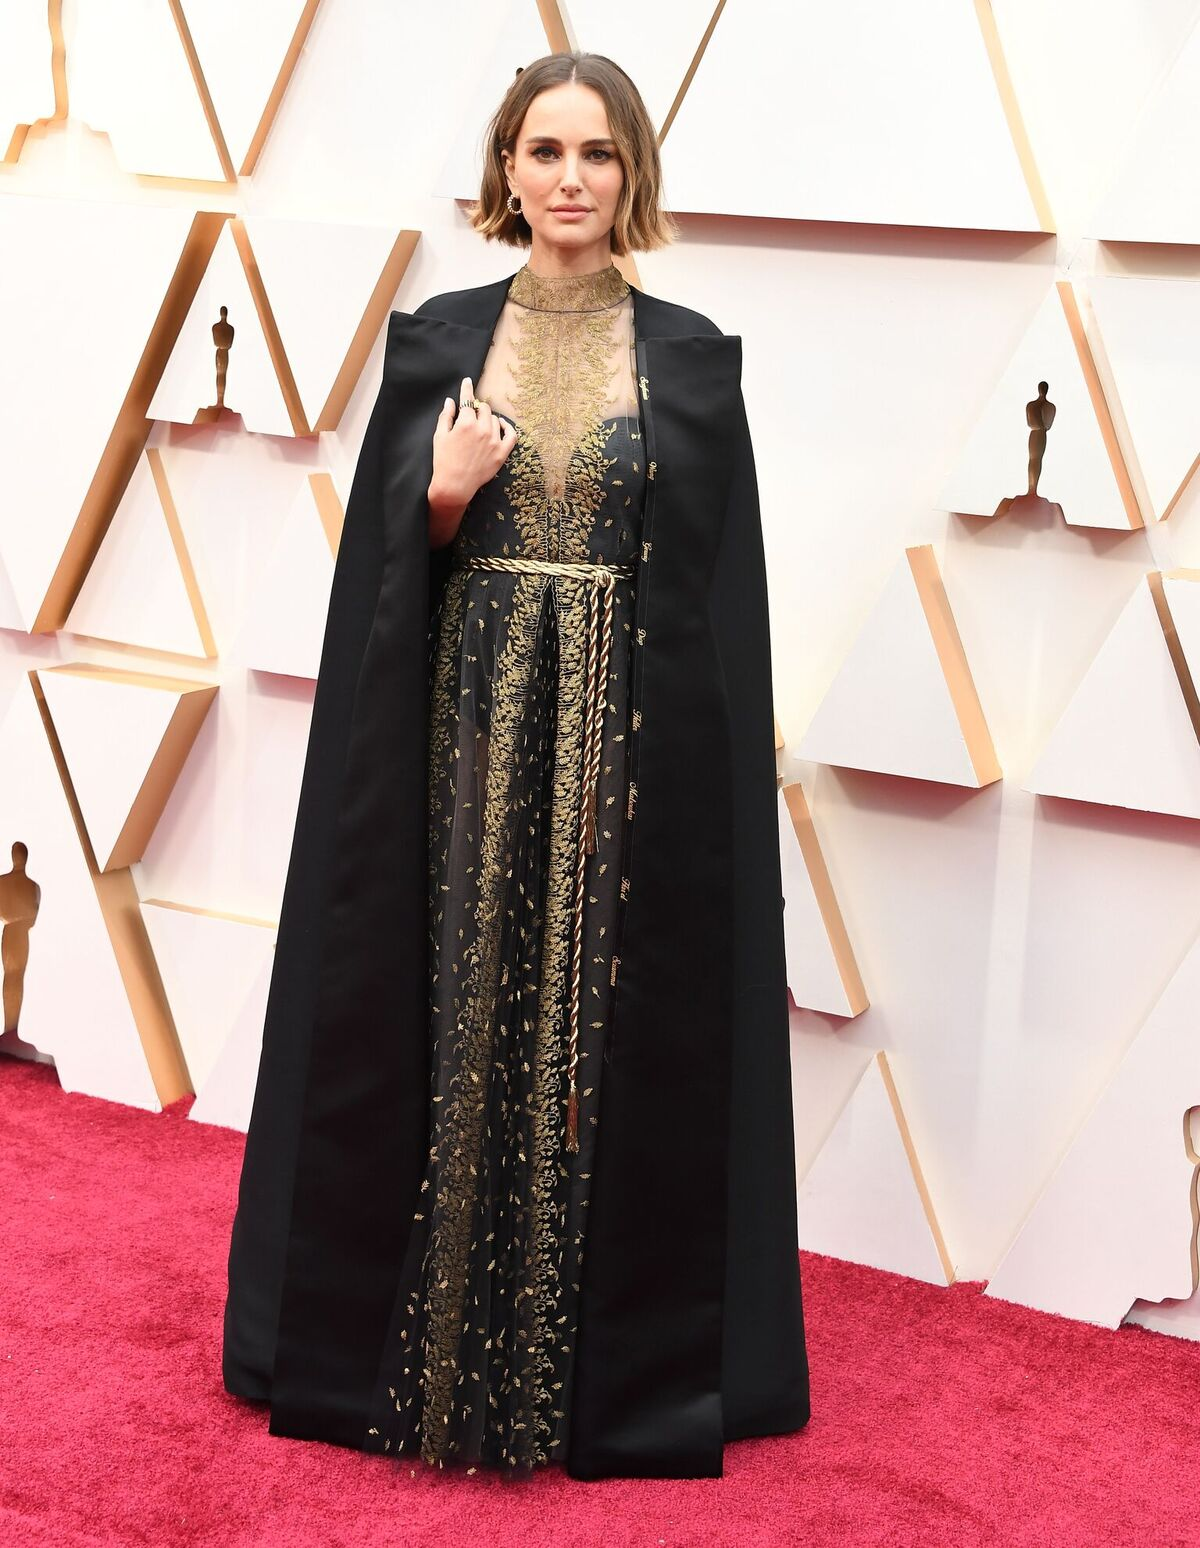 Natalie Portman at the 92nd Annual Academy Awards on February 09, 2020, in Hollywood, California | Photo: Steve Granitz/WireImage/Getty Images